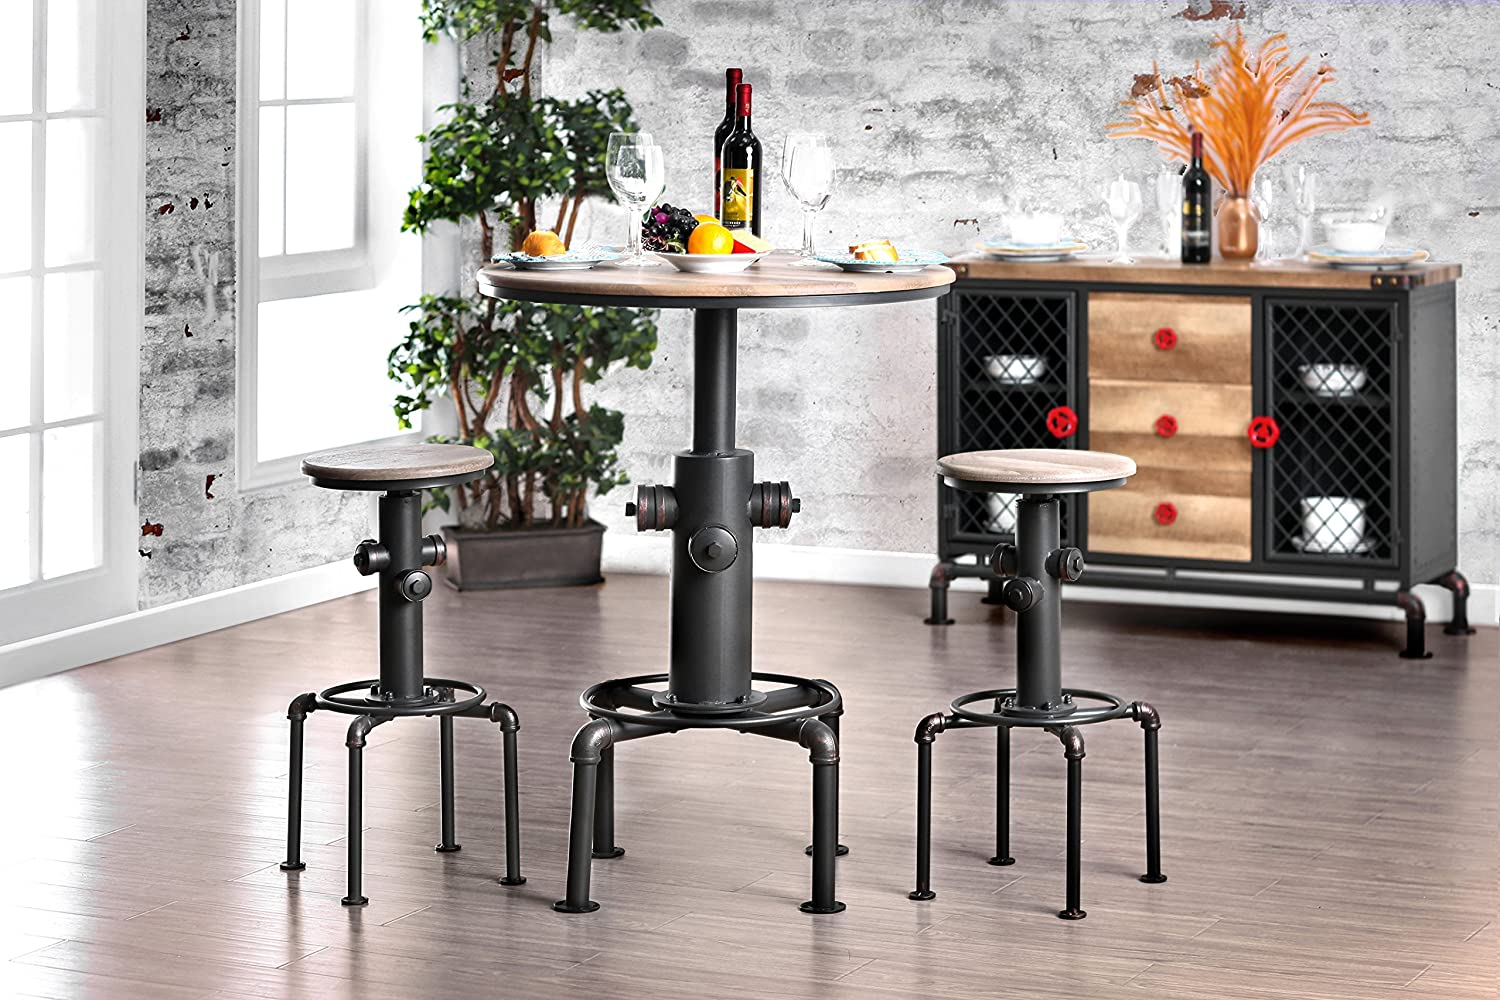 HOMES Inside Out IDF-3367BT Antique Black Grant Industrial Bar Table